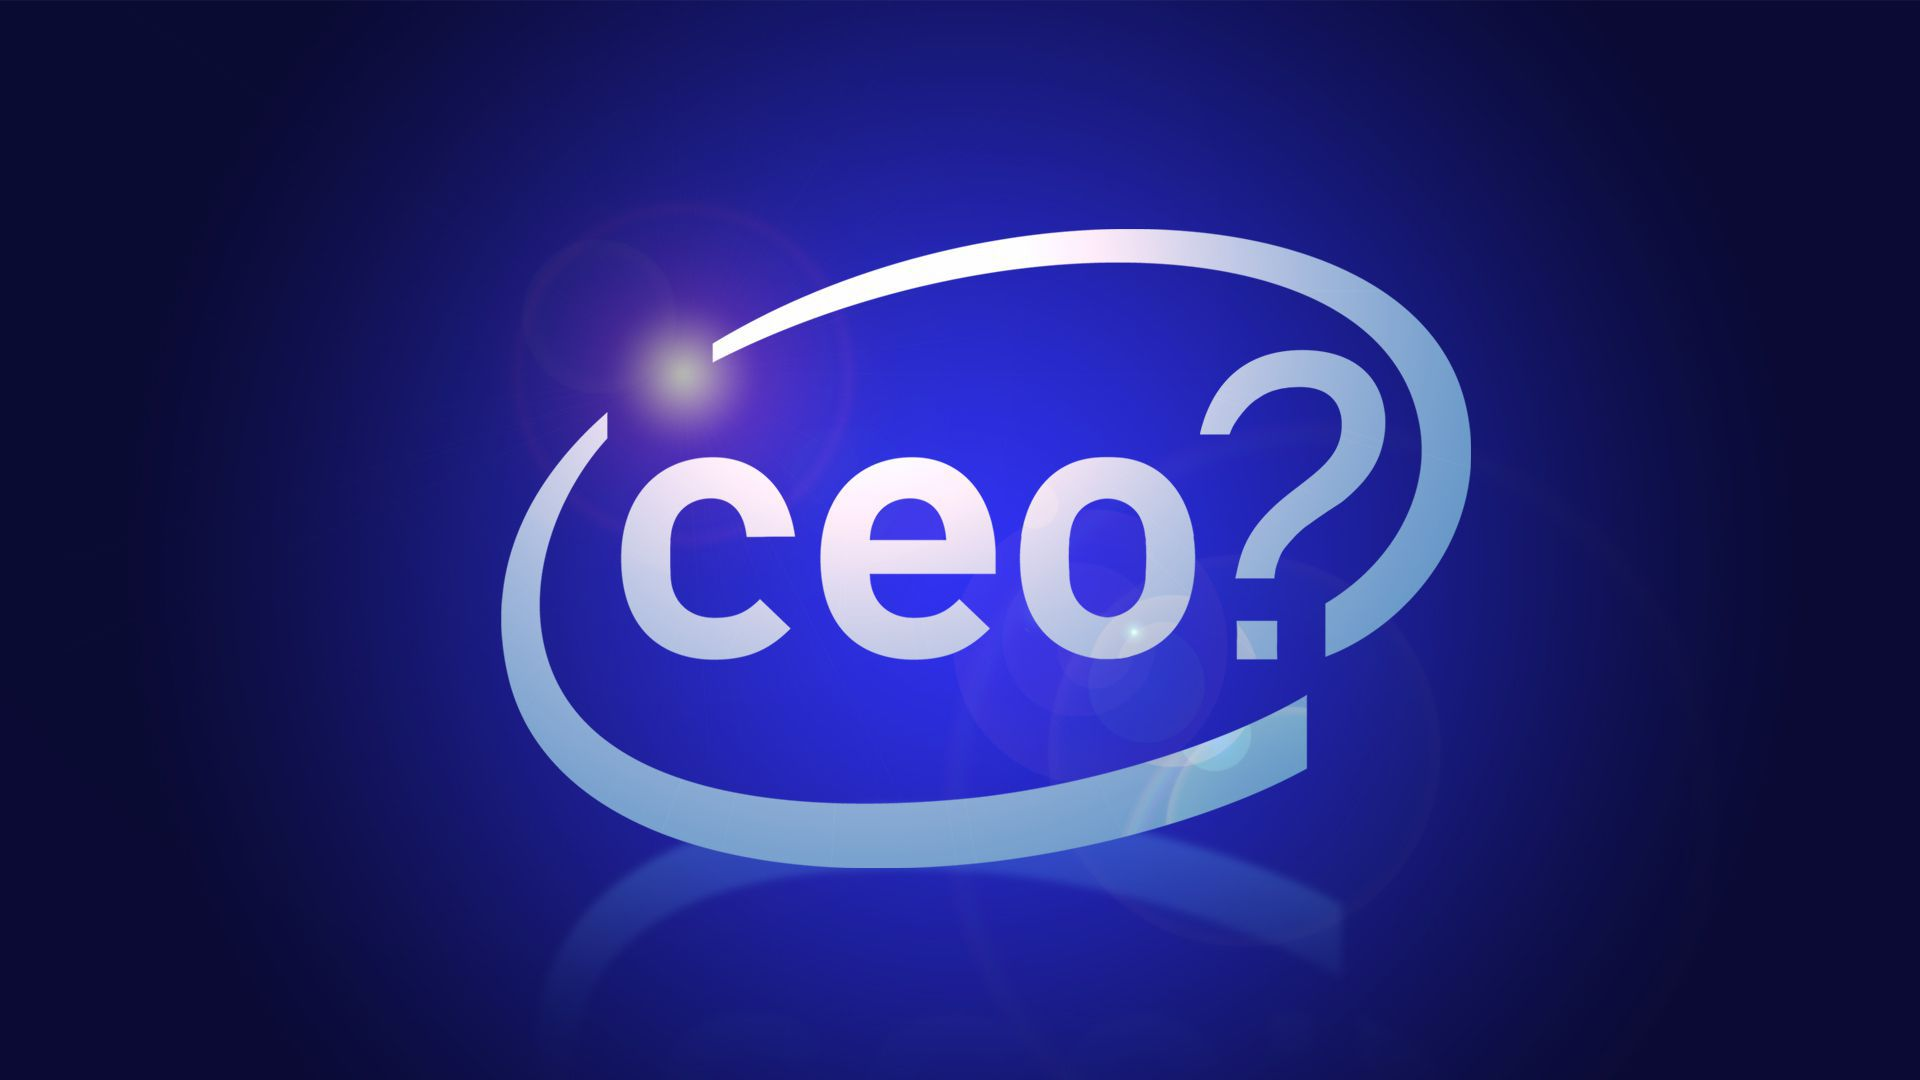 the word ceo? with a circle around it like the Intel logo